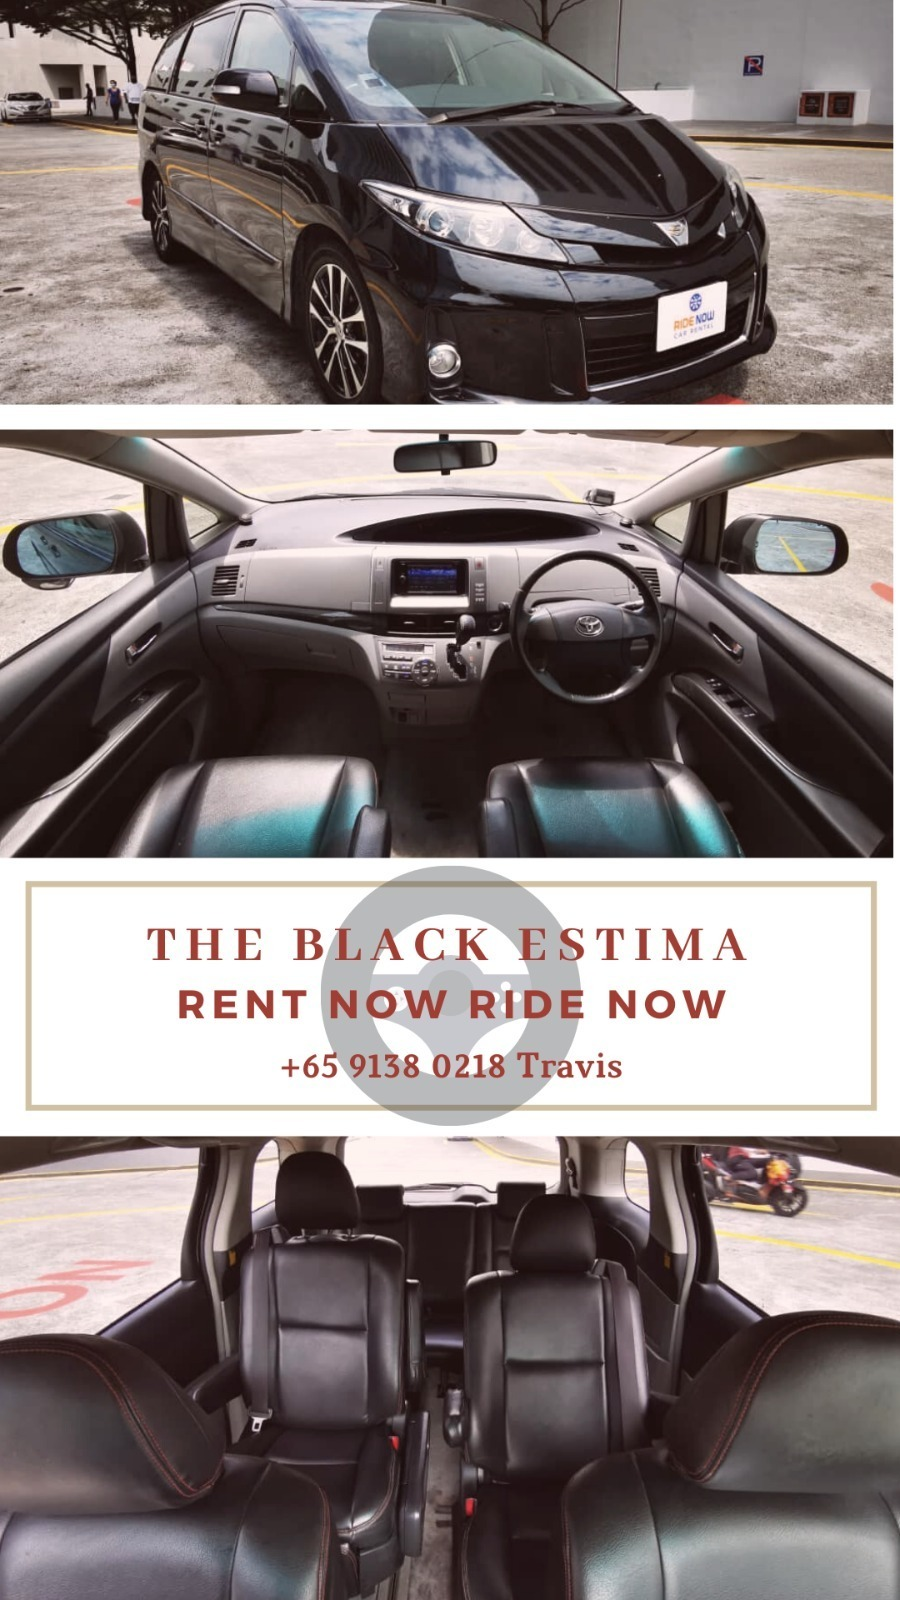 Toyota Estima 2.4A Black elegant MPV! Super luxurious and comfortable for all passengers! P Plate Welcome!